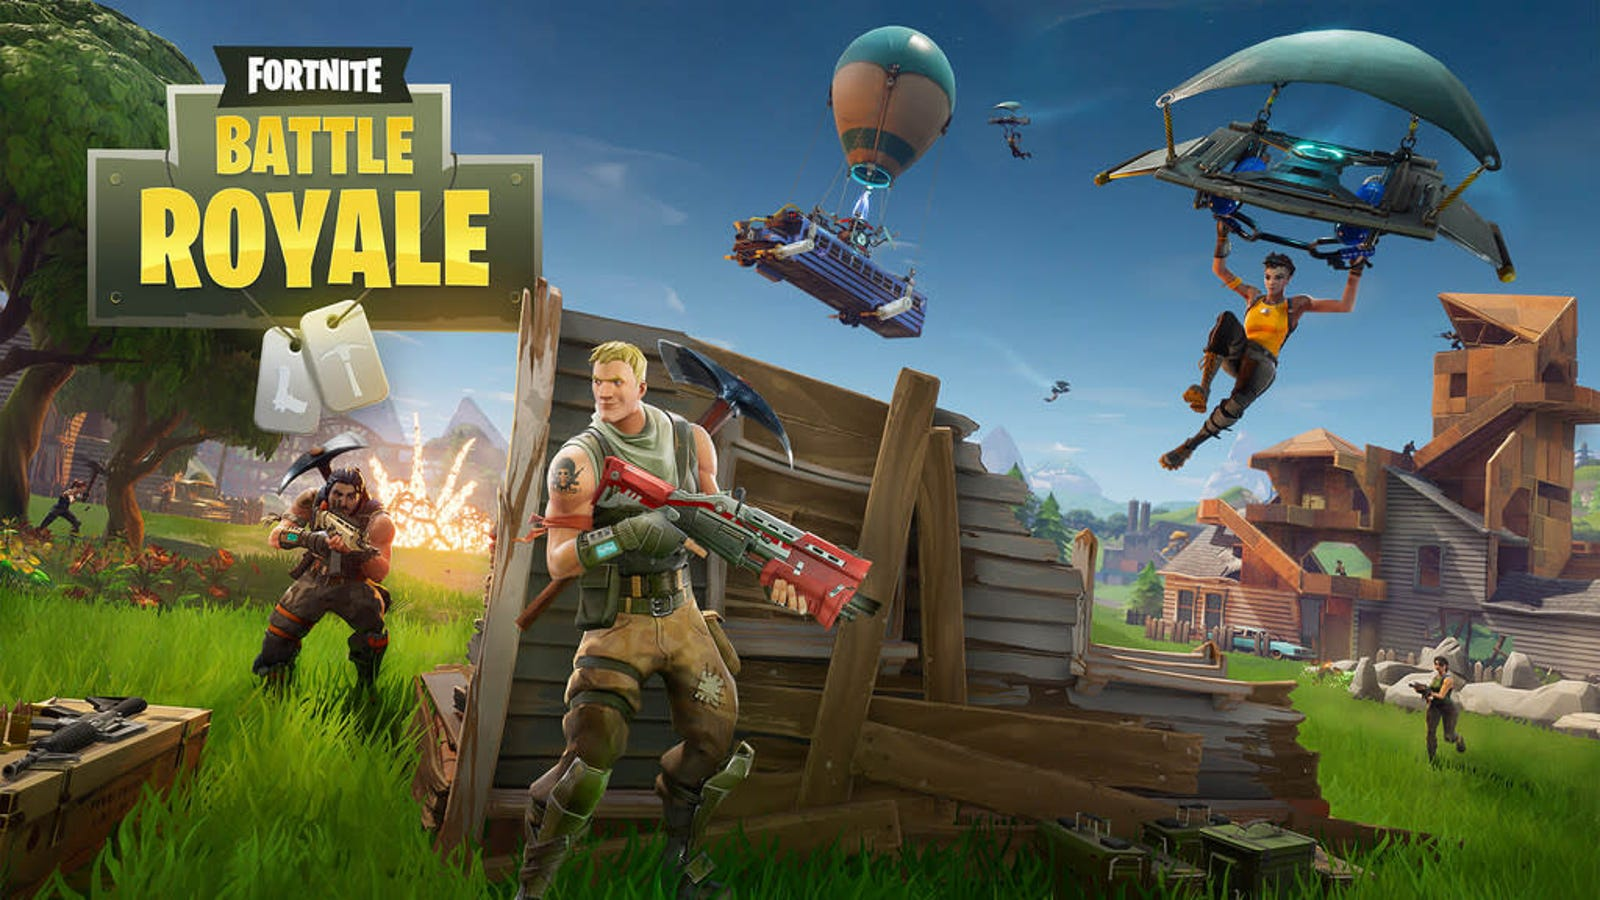 How to Get Started Playing 'Fortnite Battle Royale'